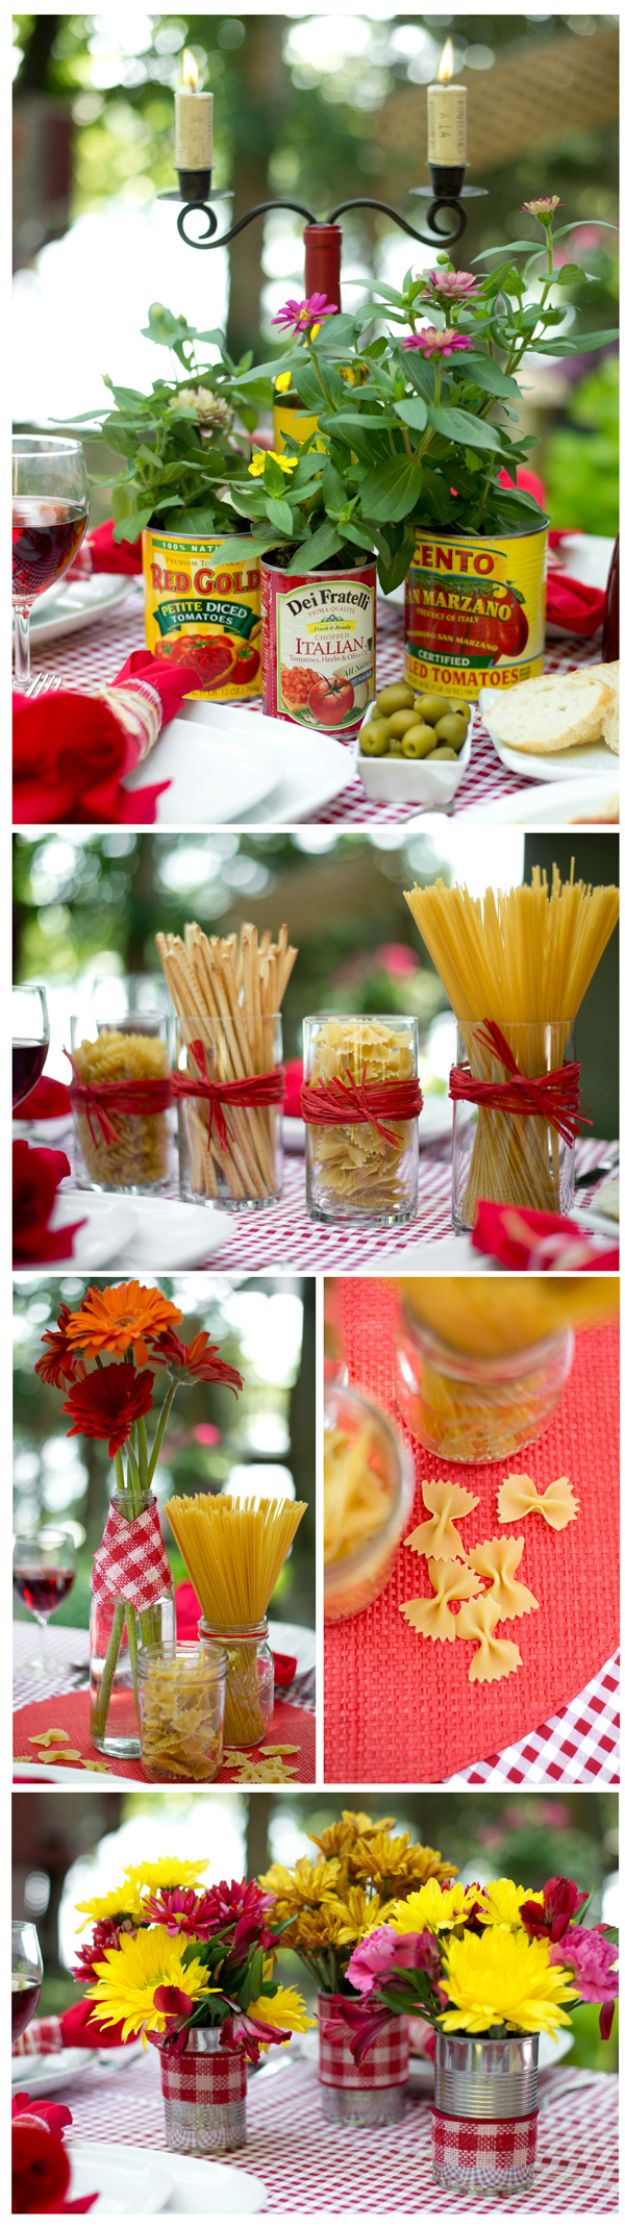 Best Dinner Party Ideas - Budget Centerpiece - Best Recipes for Foods to Serve, Casseroles, Finger Foods, Desserts and Appetizers- Place Settings and Cards, Centerpieces, Table Decor and Recipe Ideas for Supper Clubs and Dinner Parties http://diyjoy.com/best-dinner-party-ideas